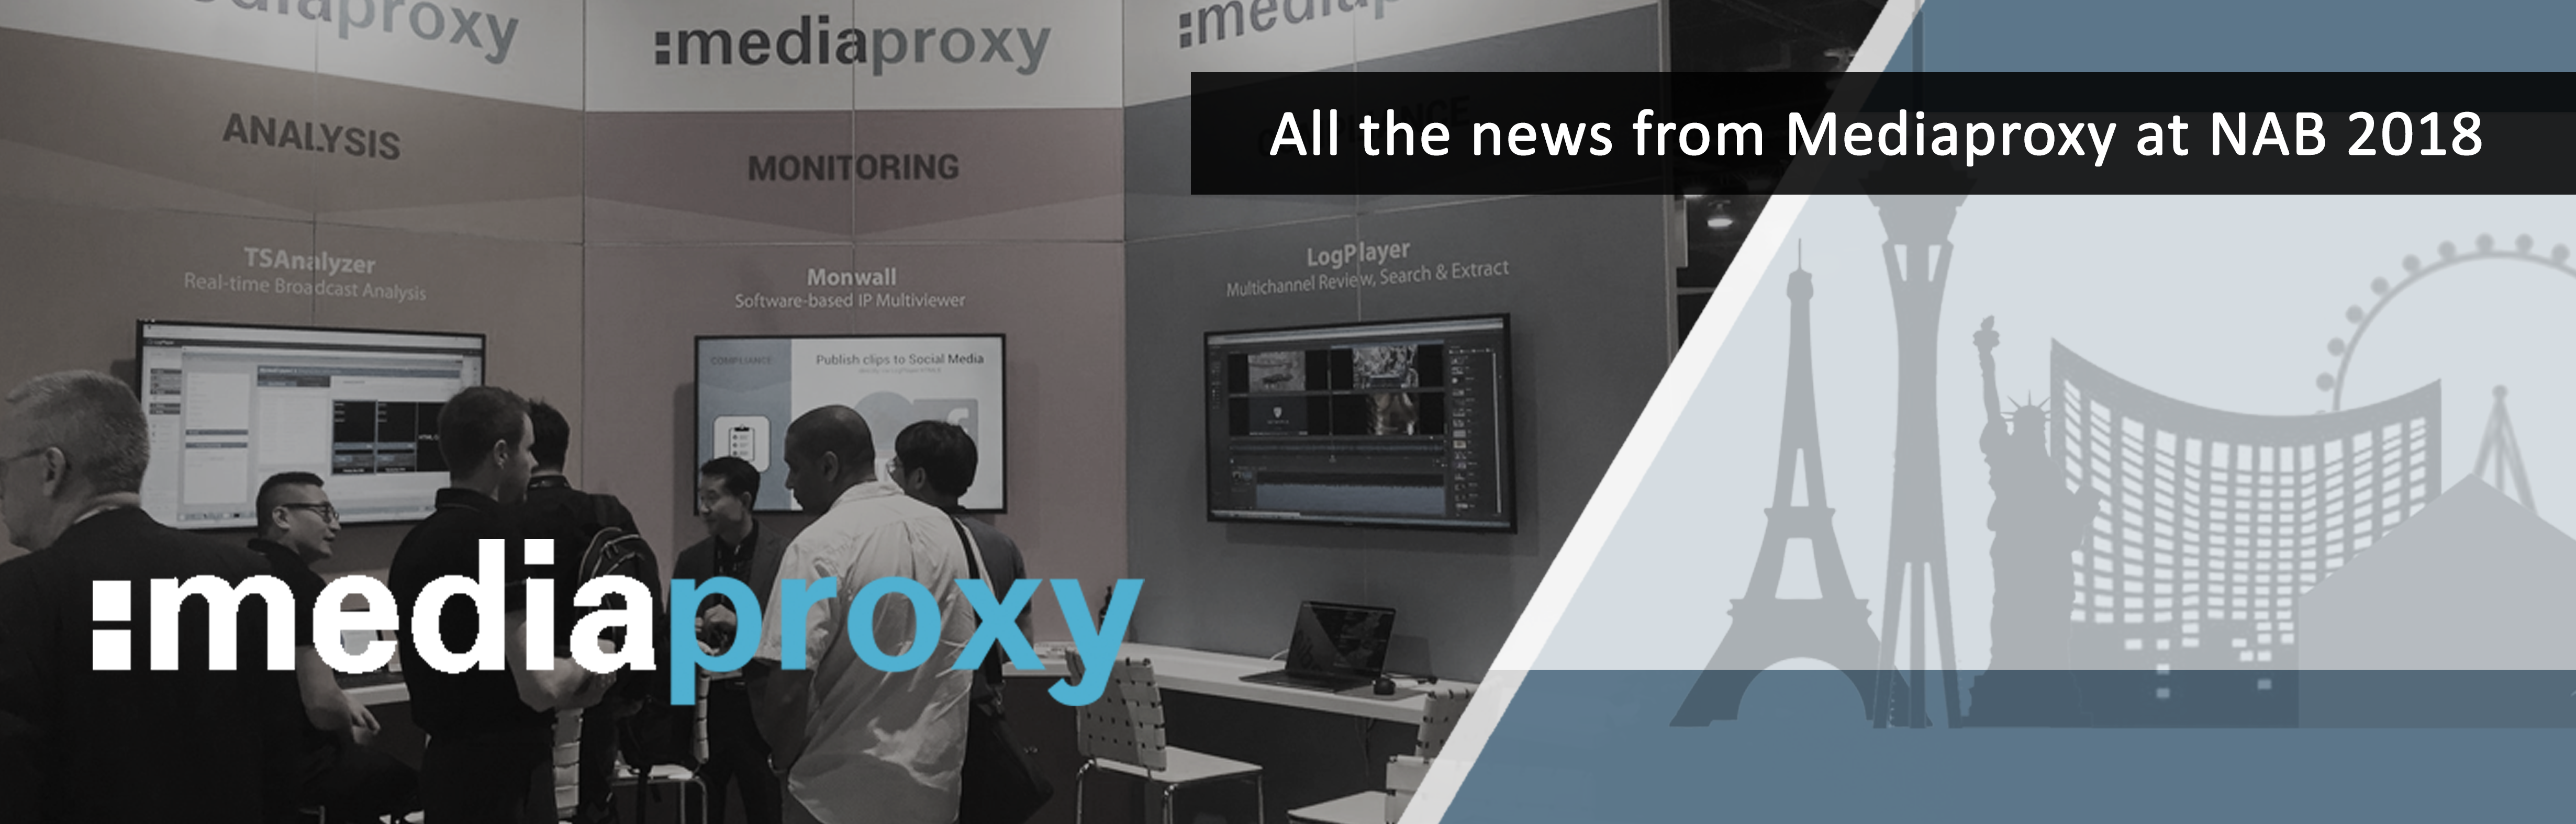 Post NAB 2018 News From Mediaproxy_Header